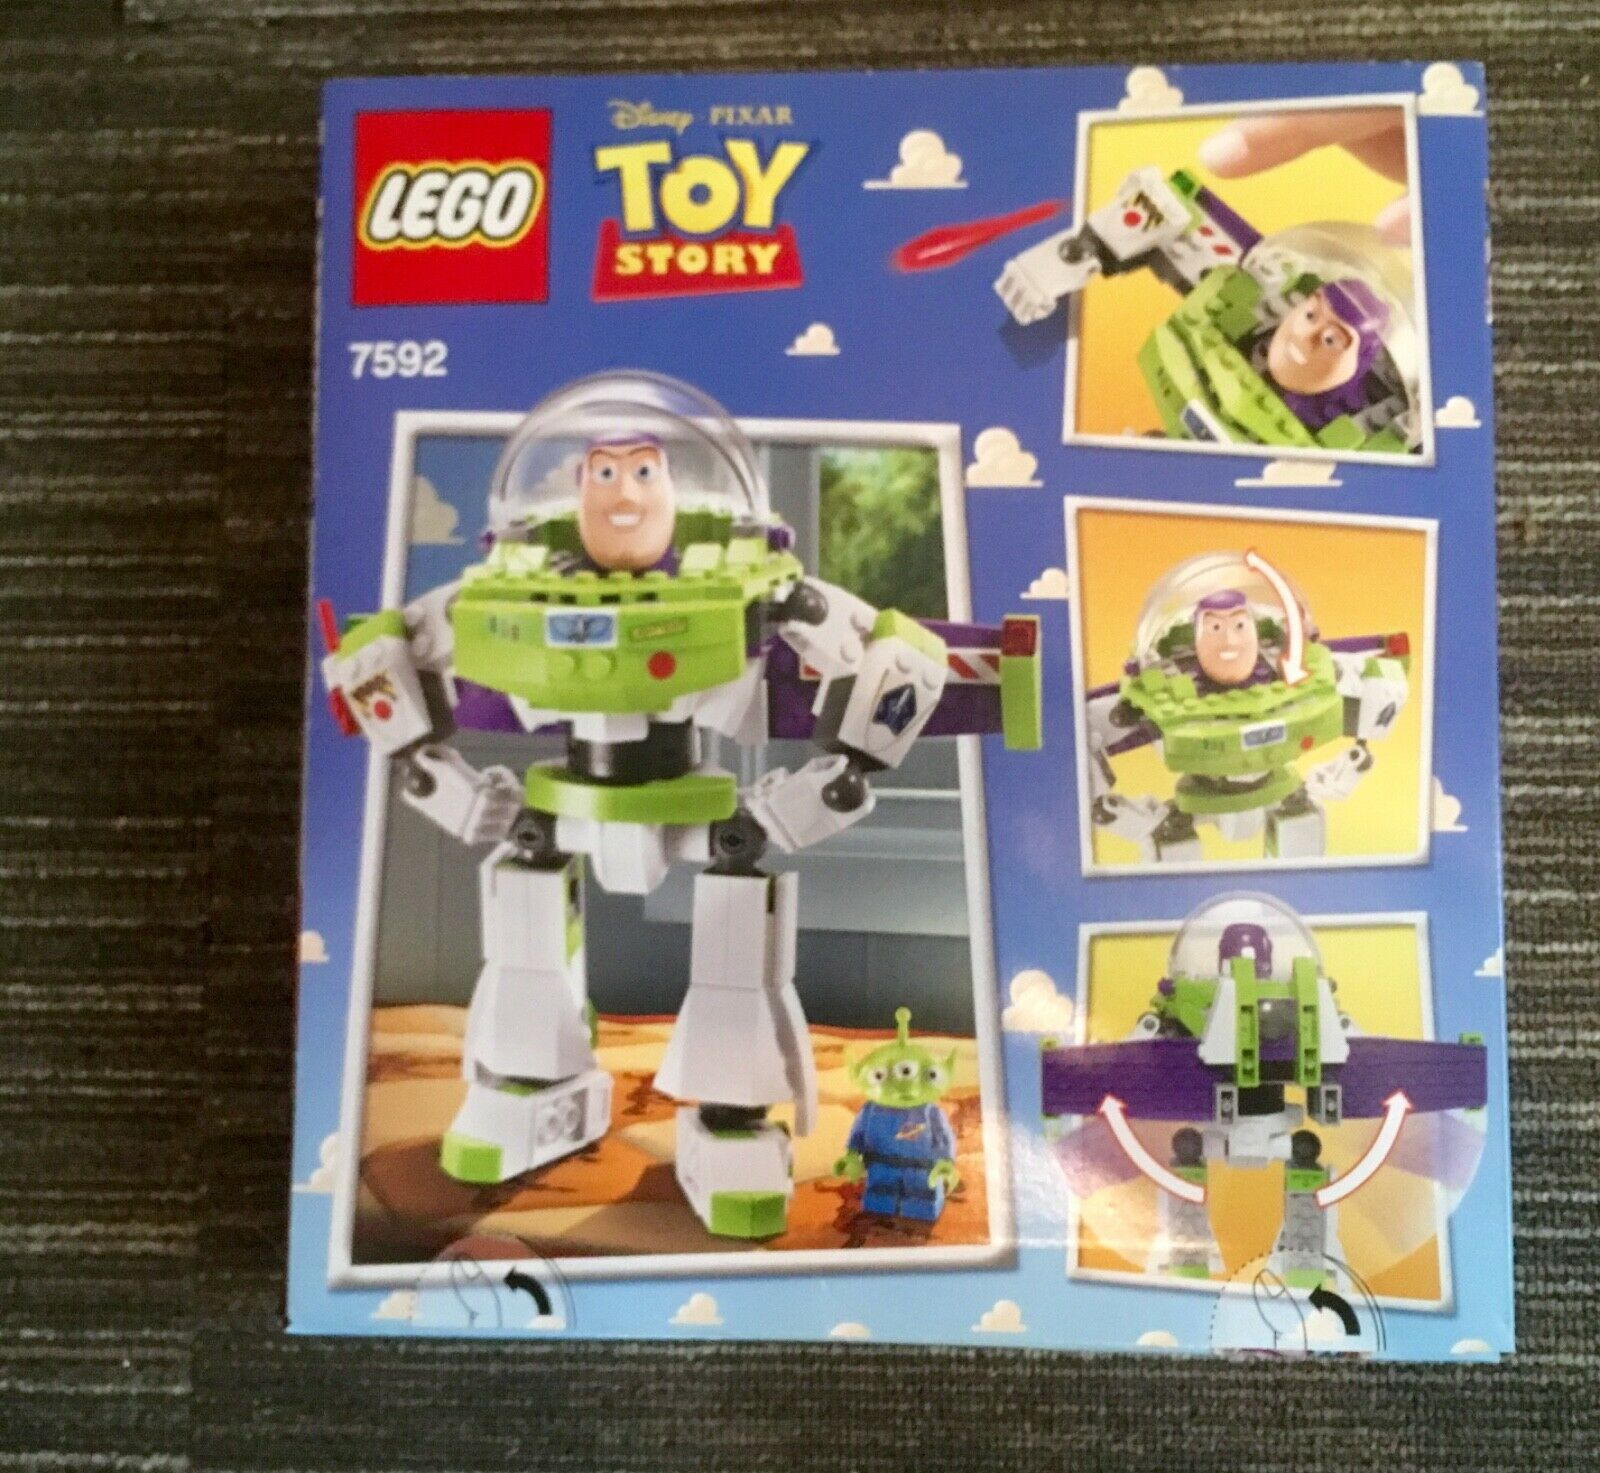 LEGO Toy Story 7592 Construct-a-Buzz Brand new sealed